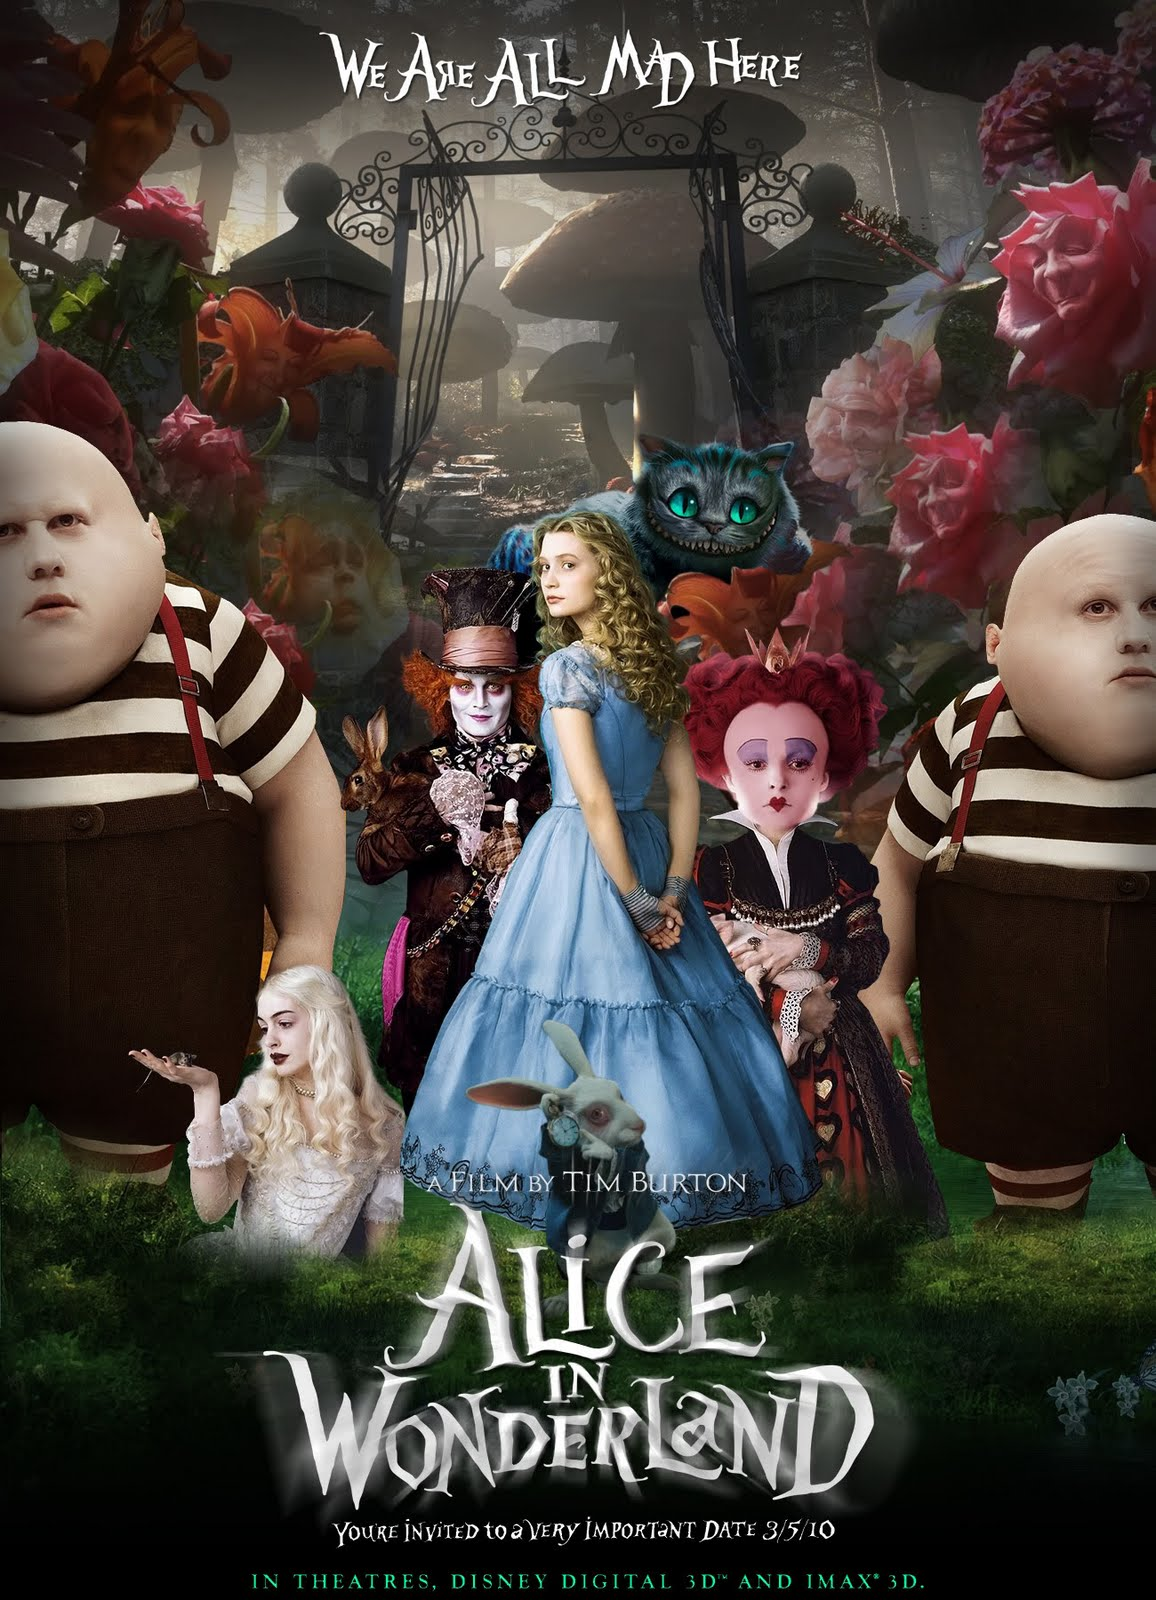 http://4.bp.blogspot.com/_qWG7dQwqo9A/TGuXWFAGY-I/AAAAAAAAAM0/Un3CD5HDMaI/s1600/Alice-in-Wonderland-3D-Movie-Poster-Johnny-Depp.jpg